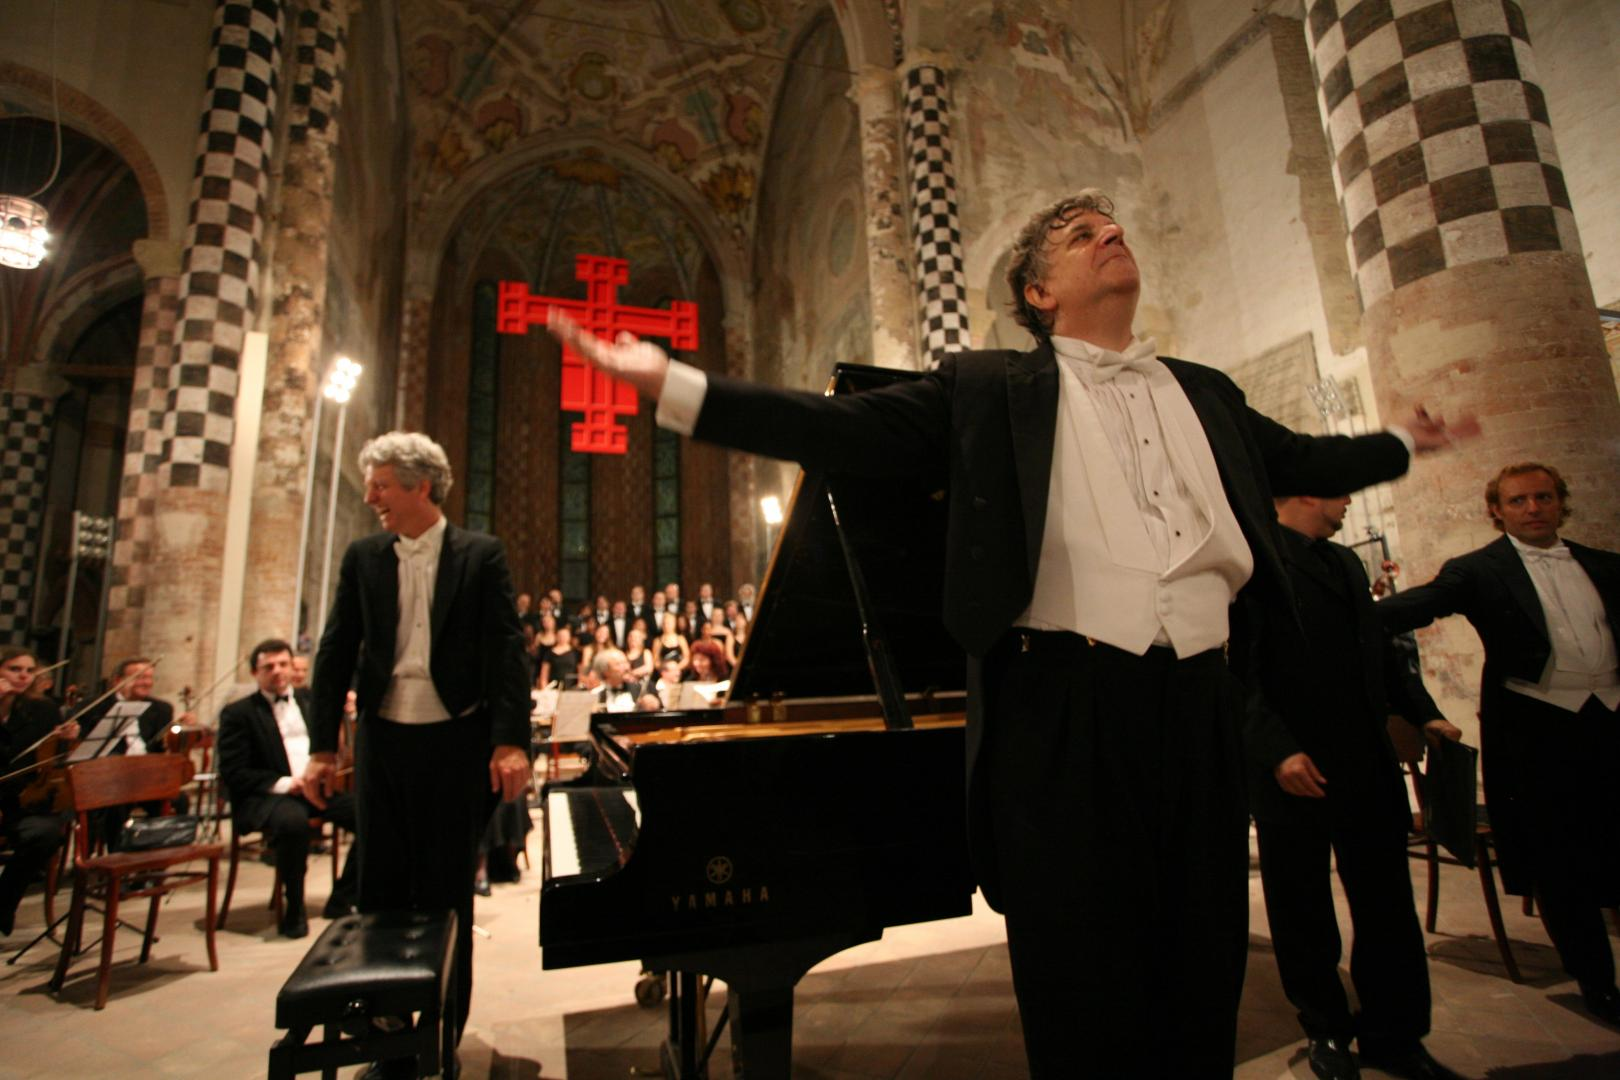 Pictured: A previous performance by Brian Ganz, left, at the Alba Music Festival in Alba, Italy, conducted by Larry Vote, center.